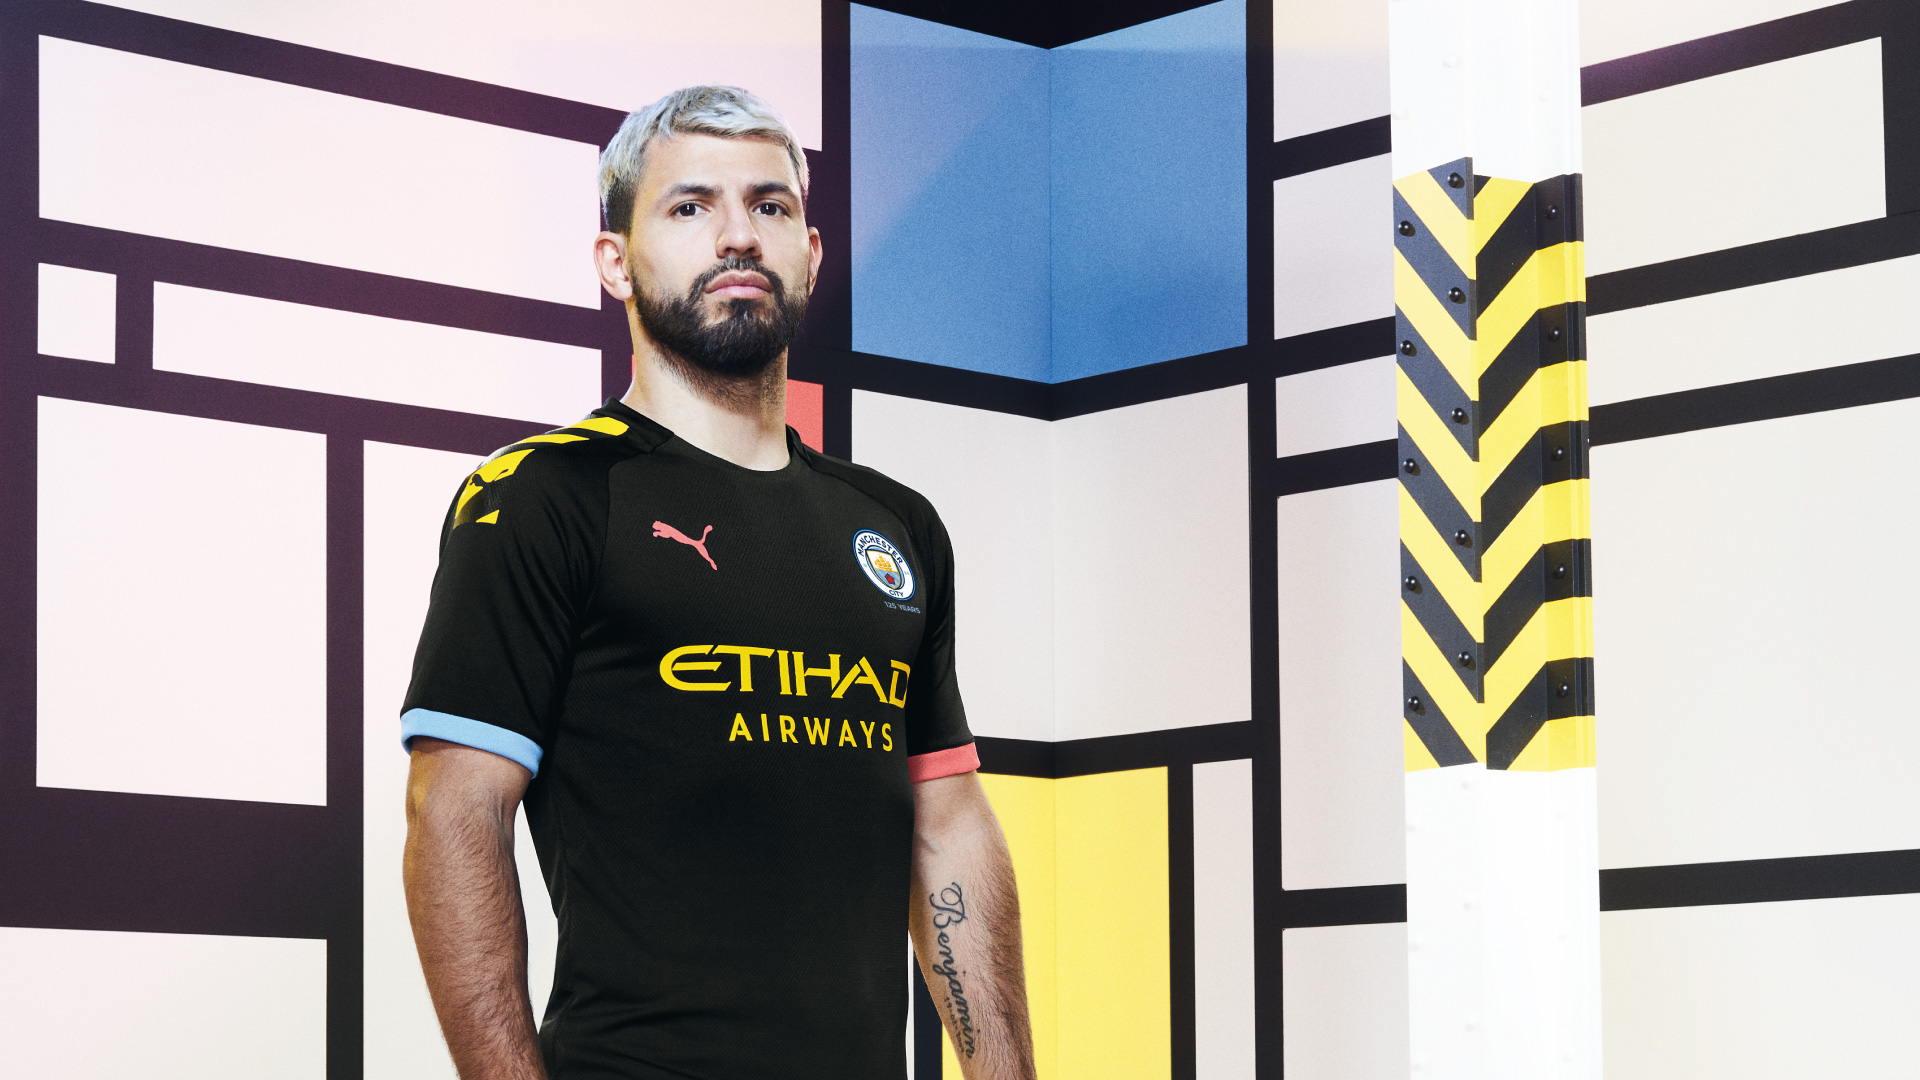 19AW_Social_TS_Football_Manchester-City_Away_1920x1080px_Portrait_Aguero_06650.jpg